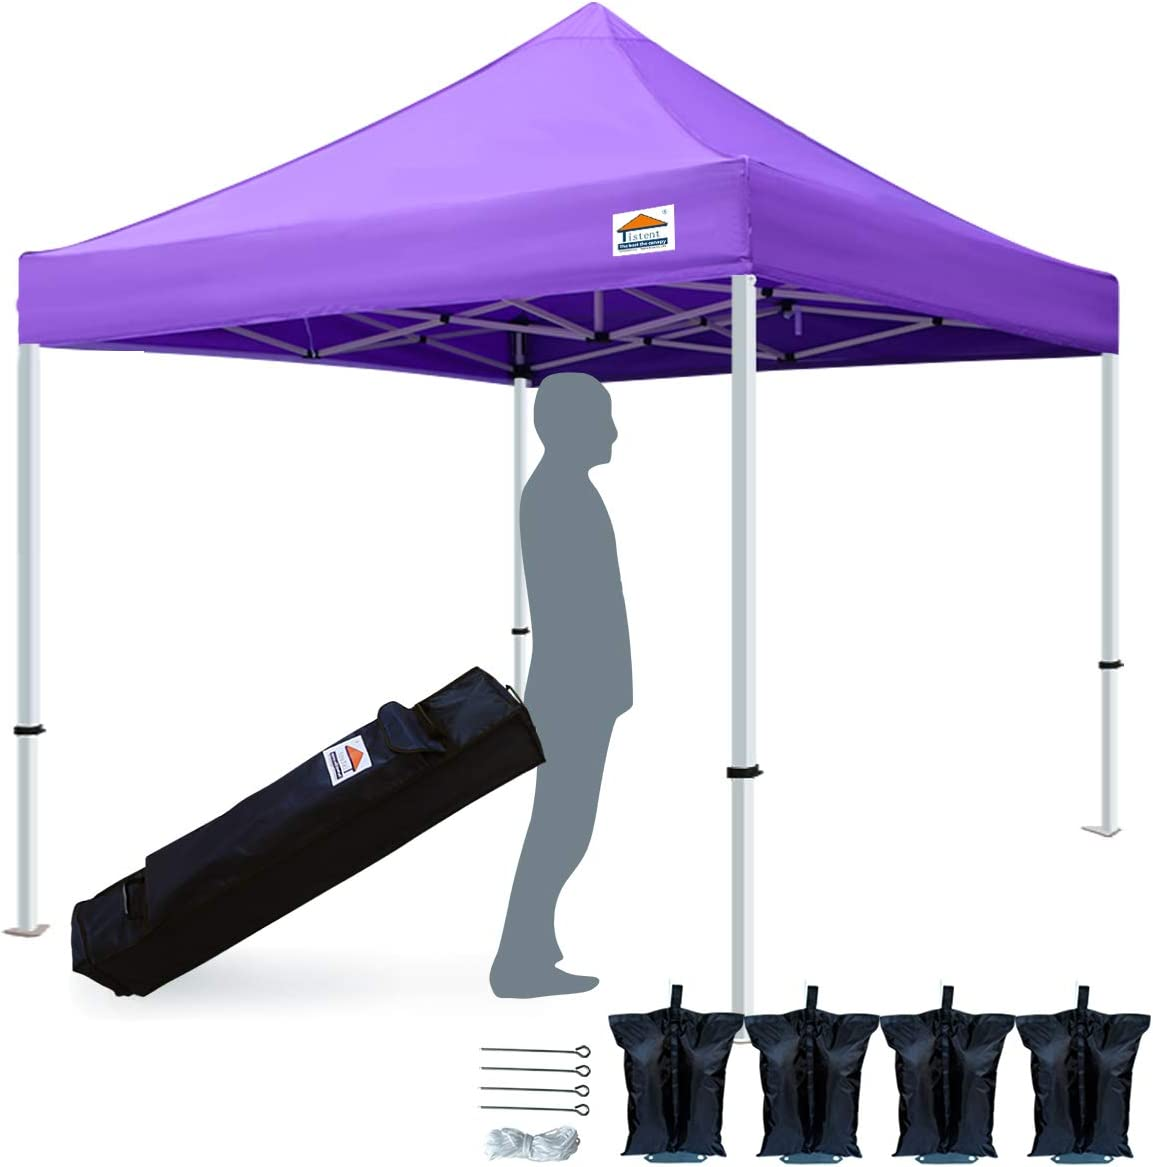 TISTENT 10 x10 Ez Pop Up Canopy Tent Commercial Instant Shelter with Heavy Duty Carrying Bag, 4 Canopy Sand Bags Purple